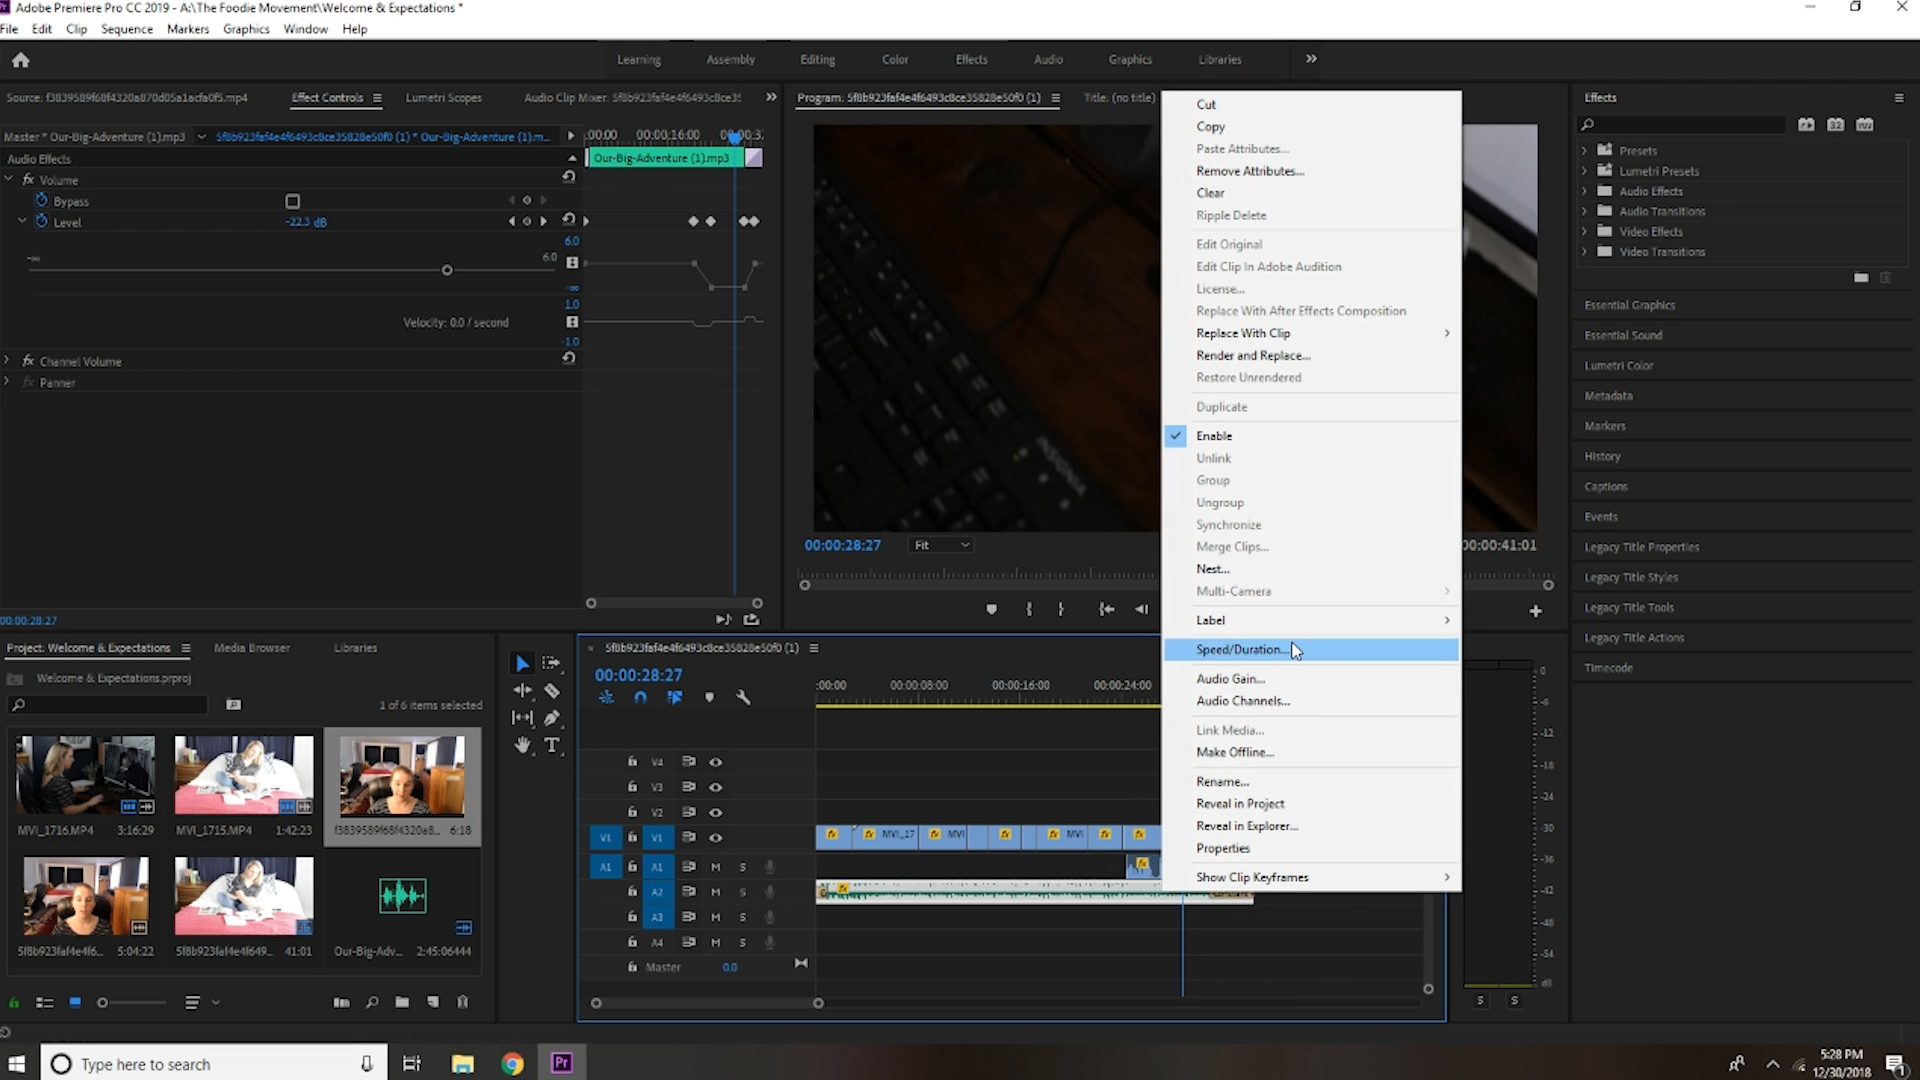 Audio clip sequence from adobe premiere pro shows additional options for audio editing.